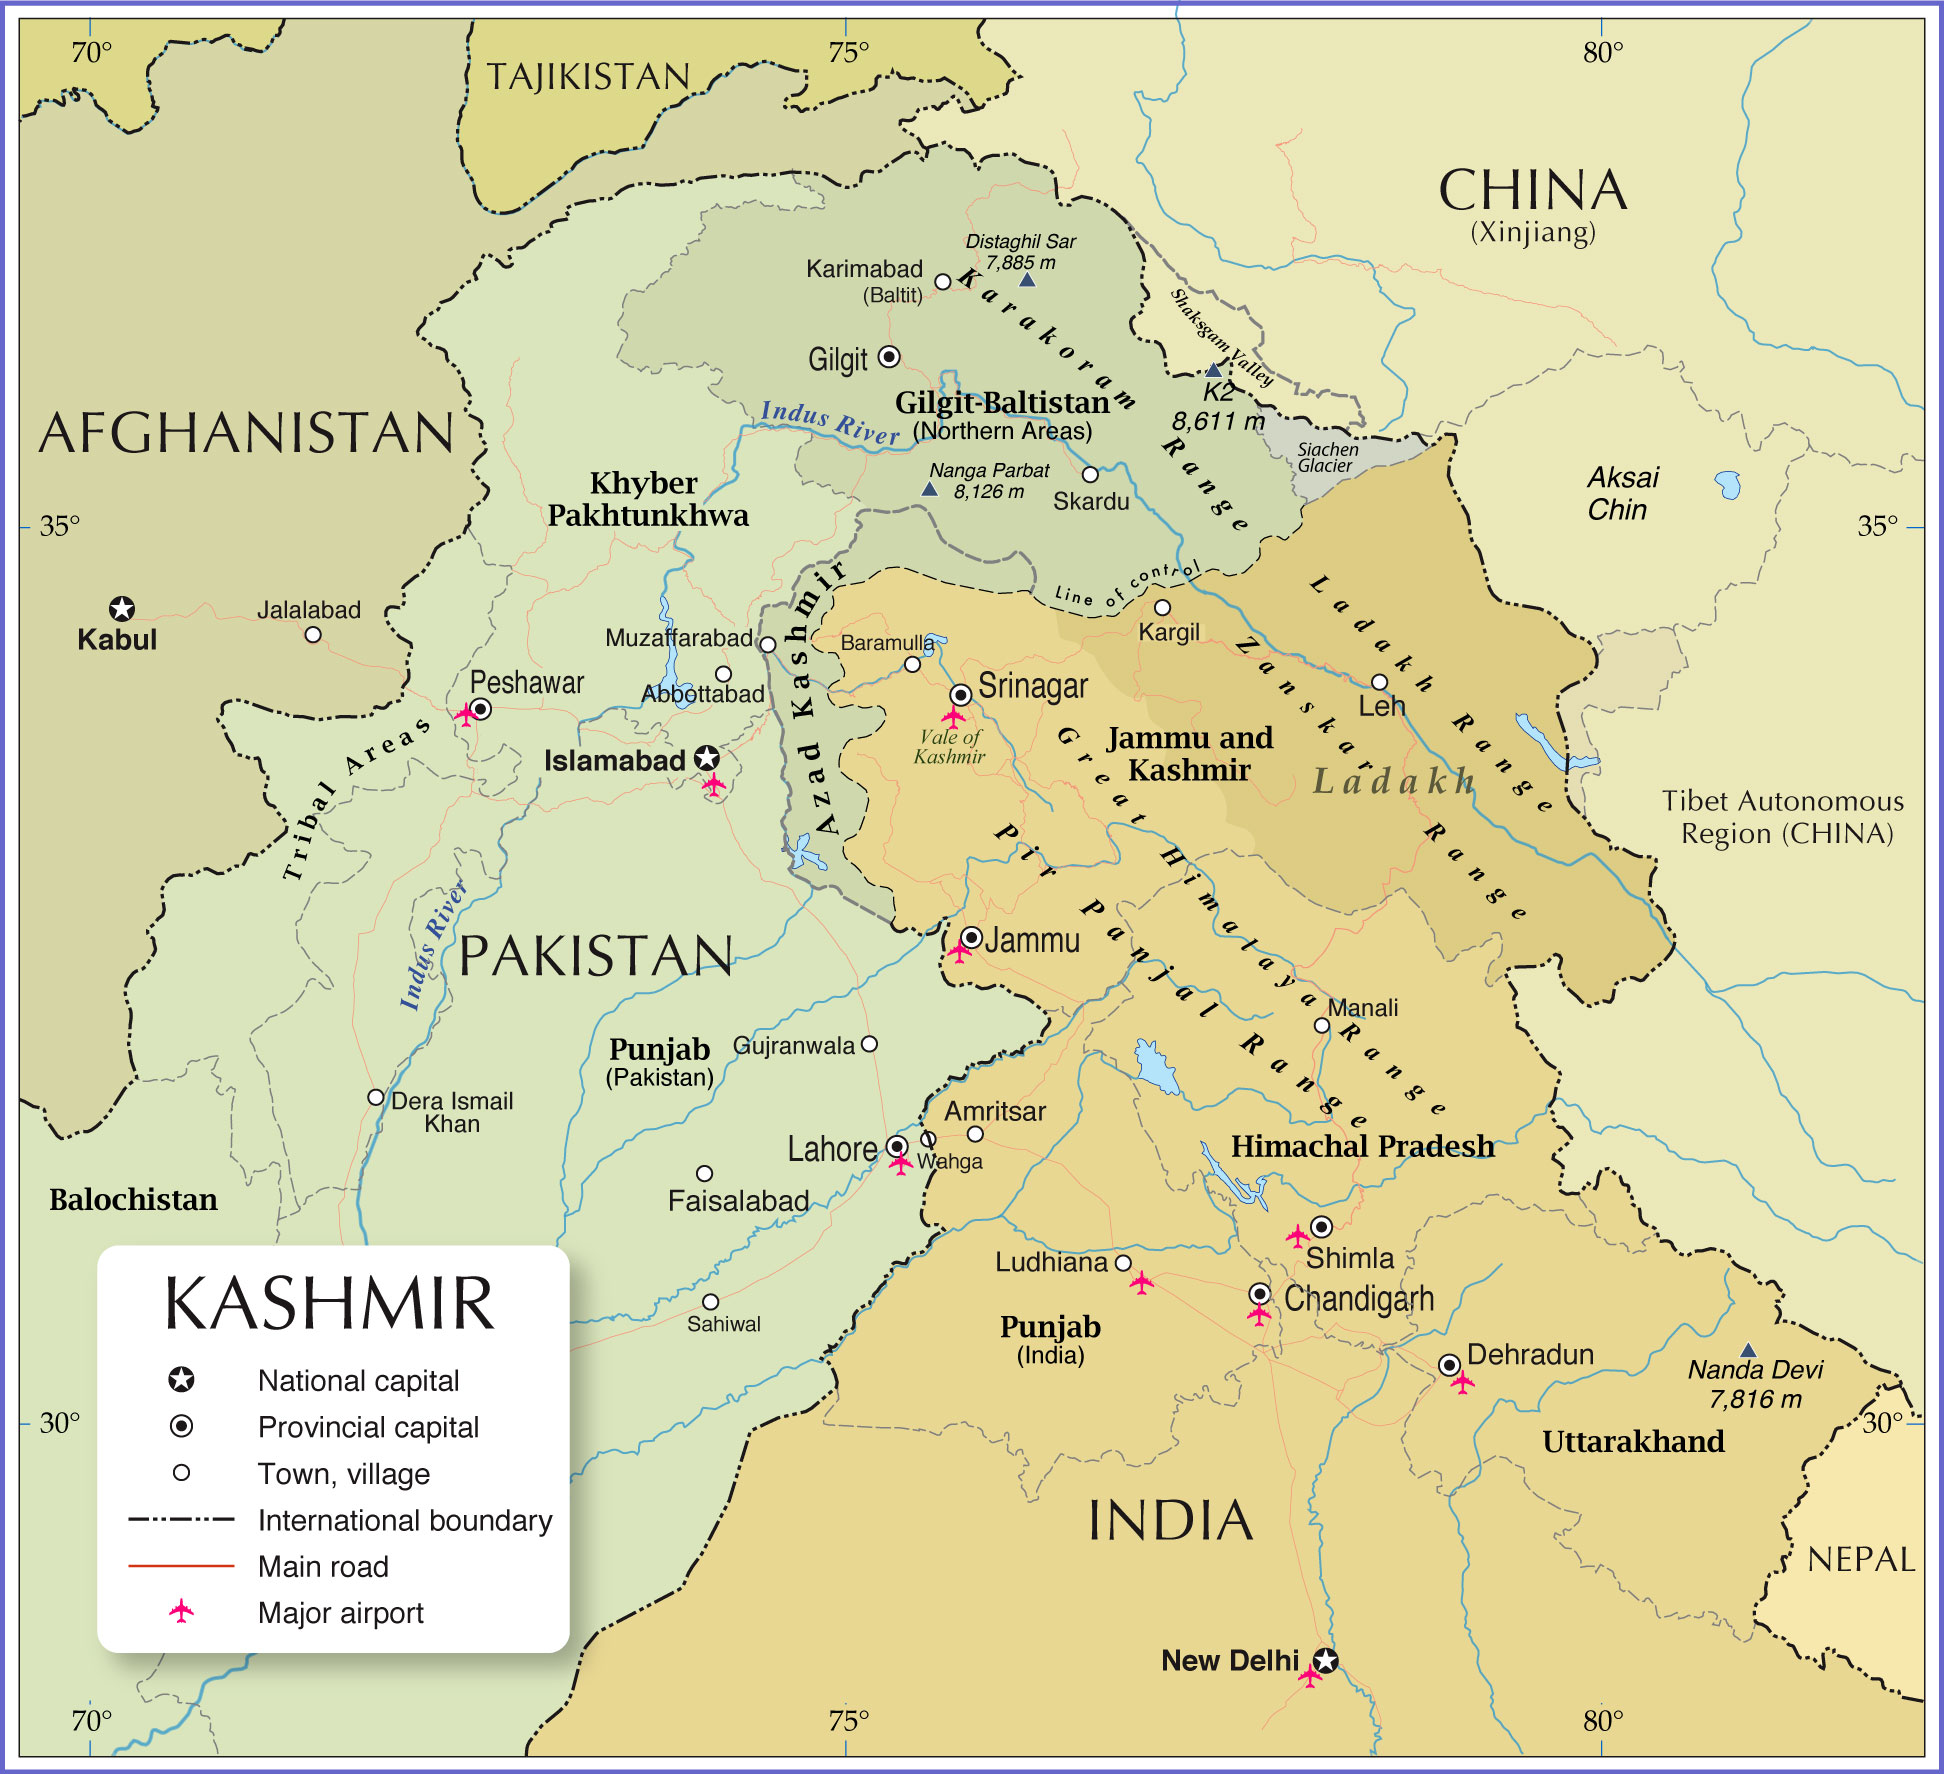 Map Of Kashmir Political Map of Kashmir Region   Nations Online Project Map Of Kashmir